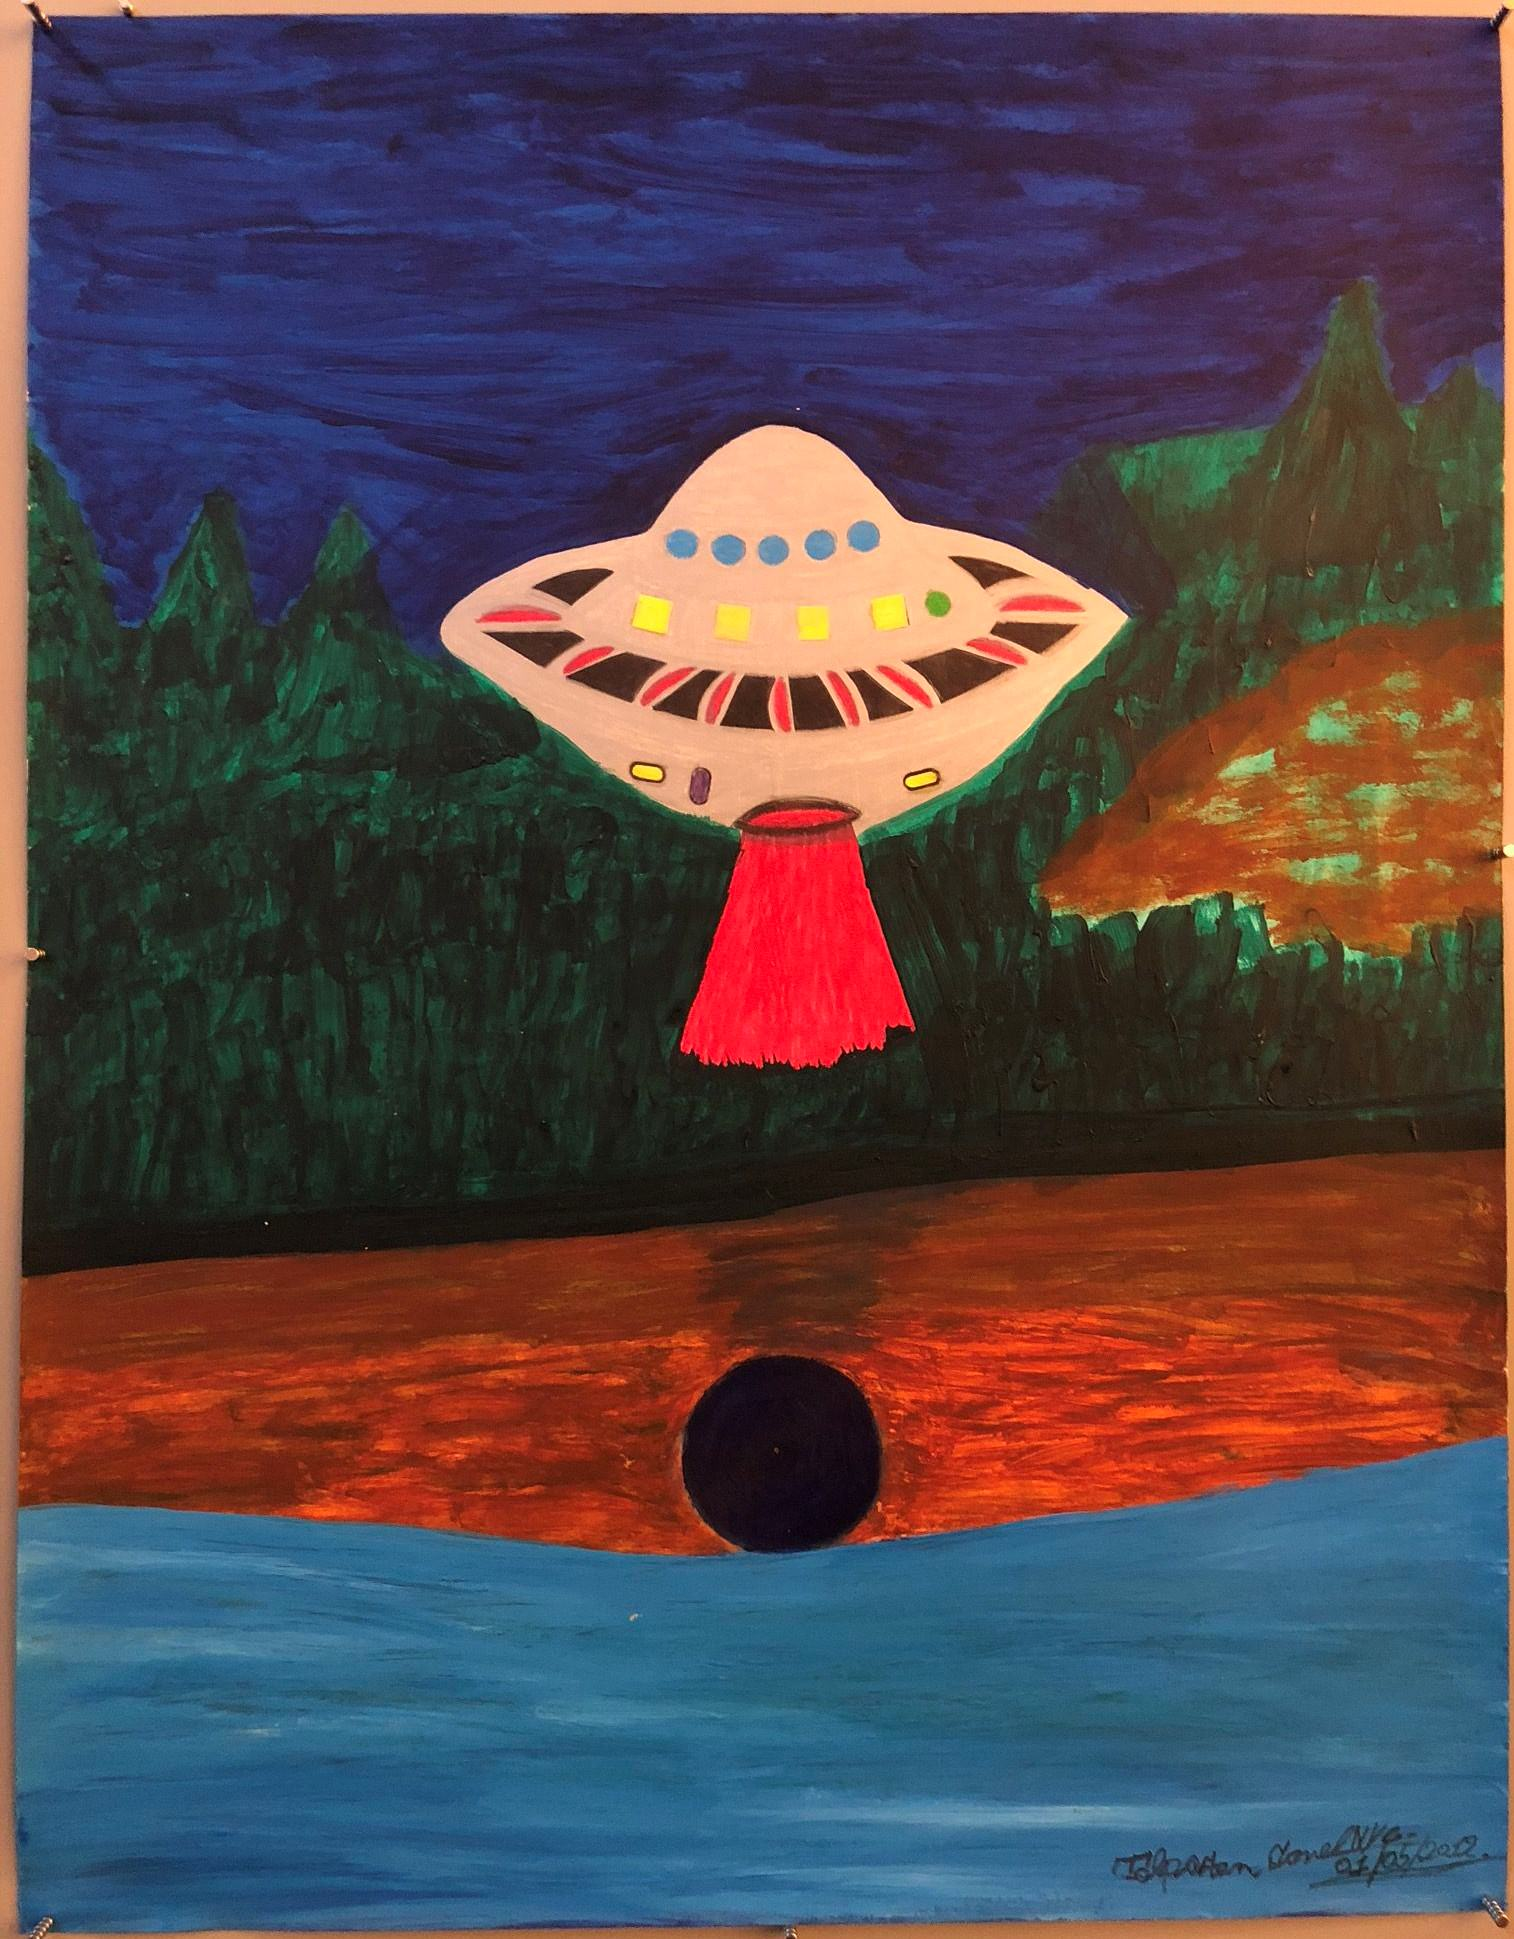 Ionel Talpazan - UFO landing by forest beaming red light